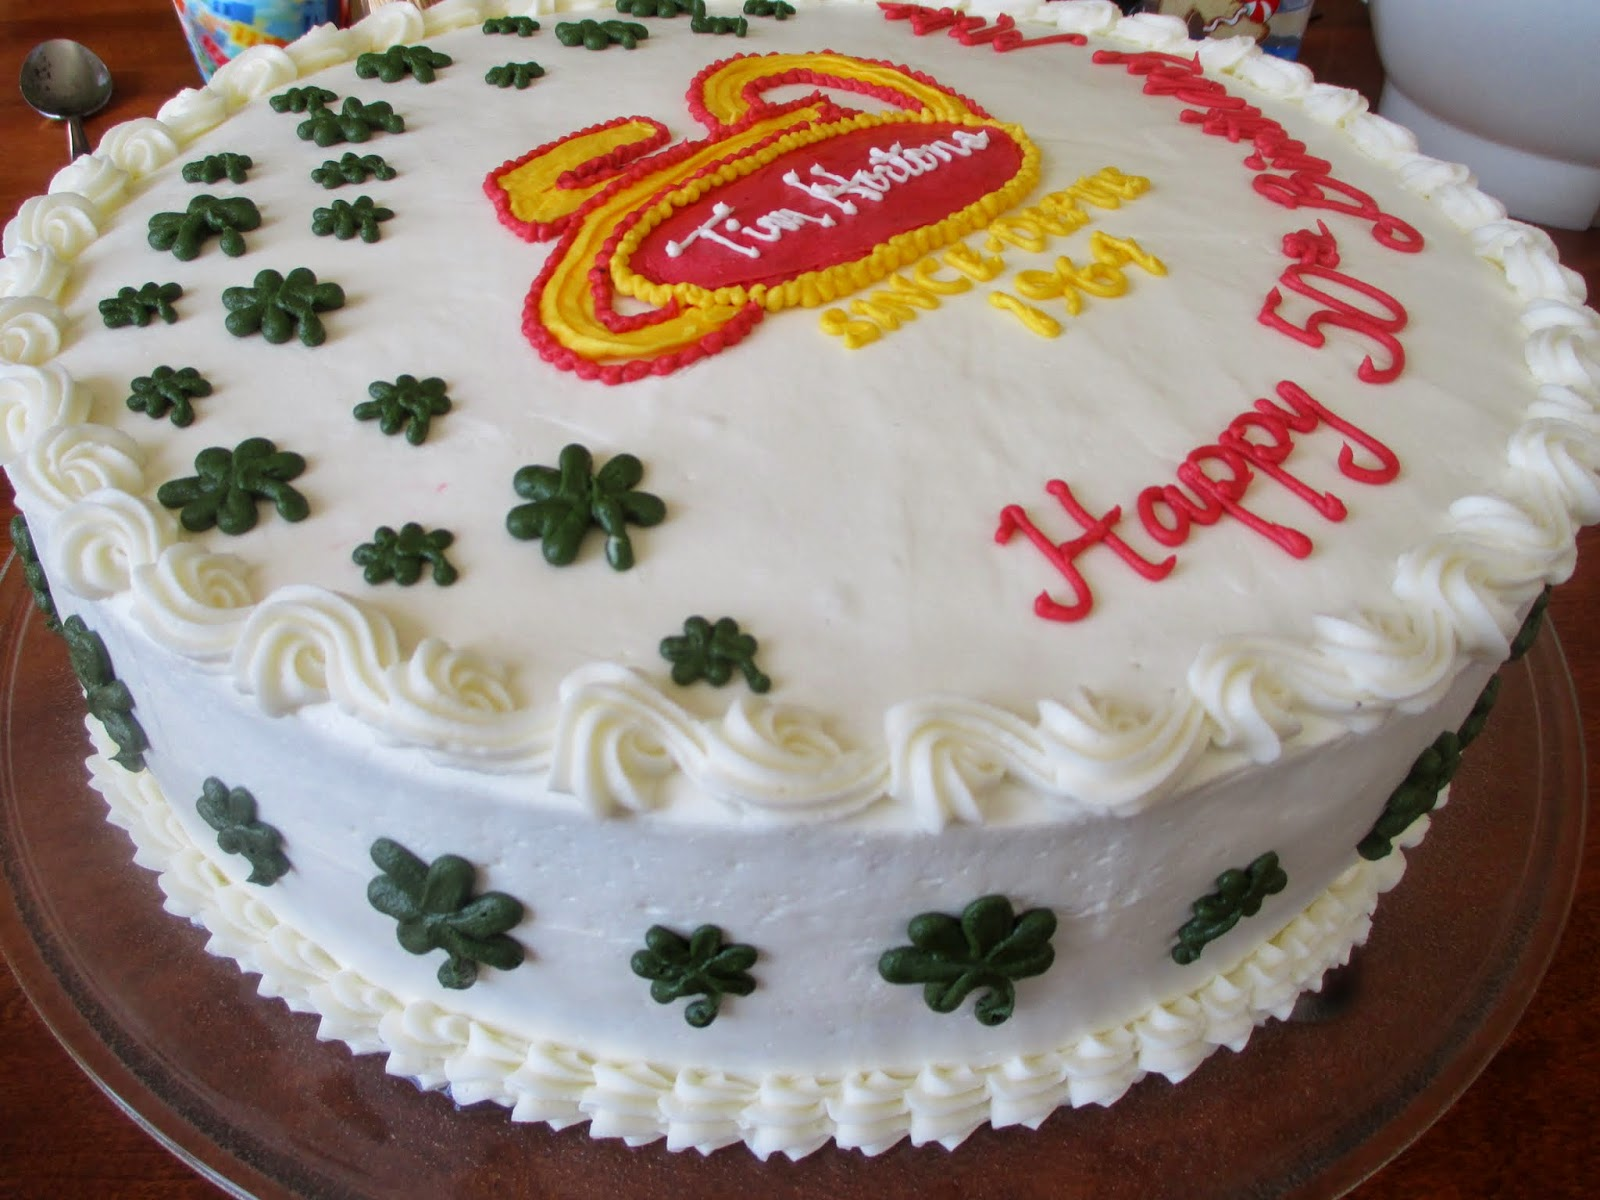 Dwyers Farmhouse A 50th Birthday Cake With Tim Hortons